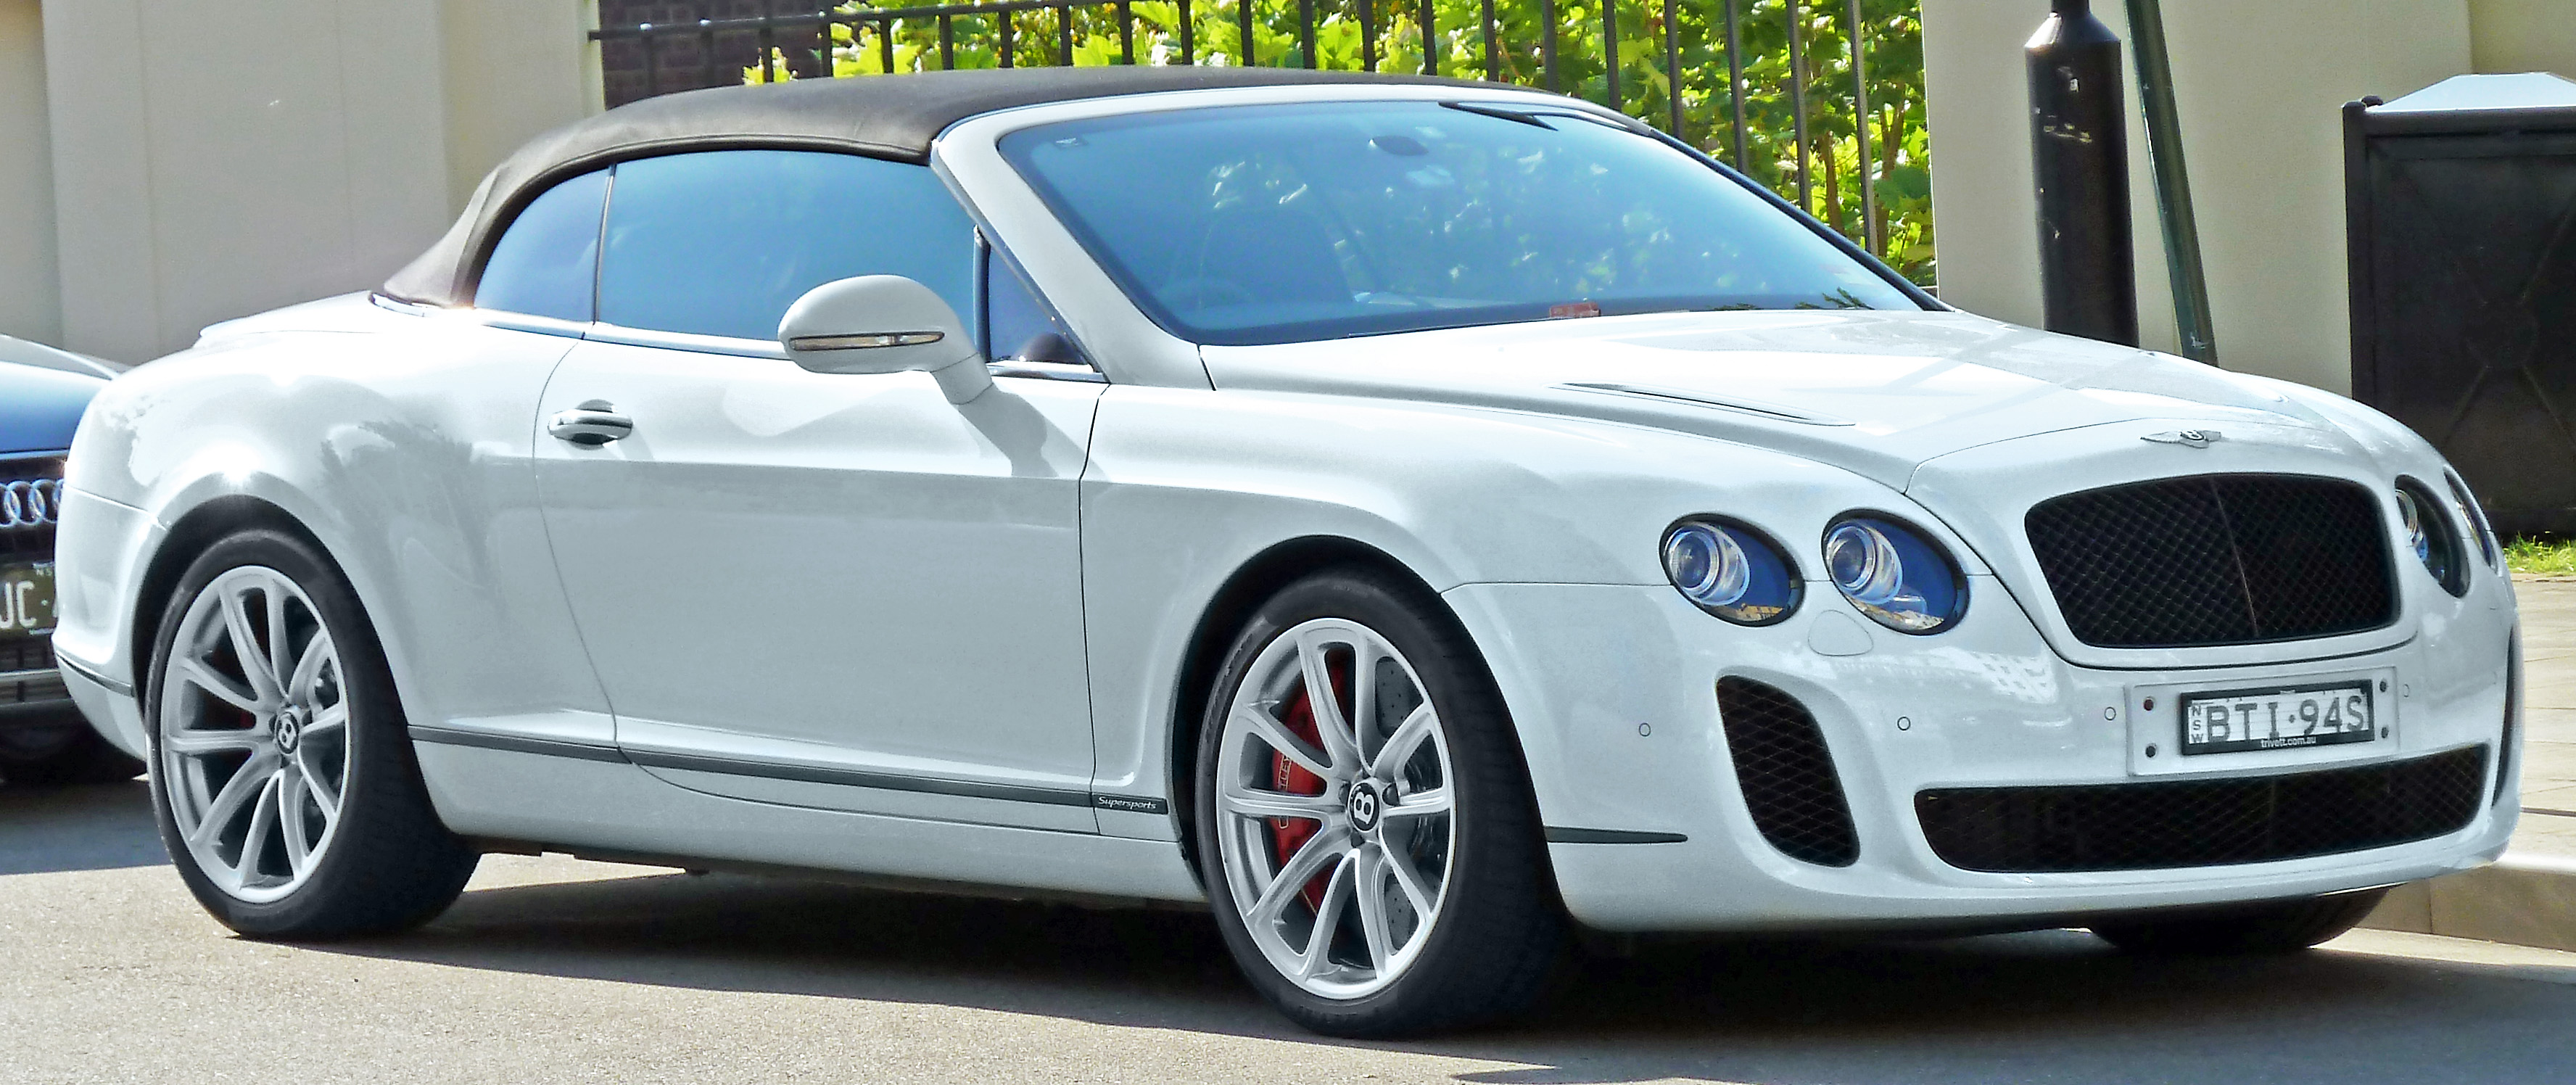 2011 Bentley Continental Supersports Convertible Information and